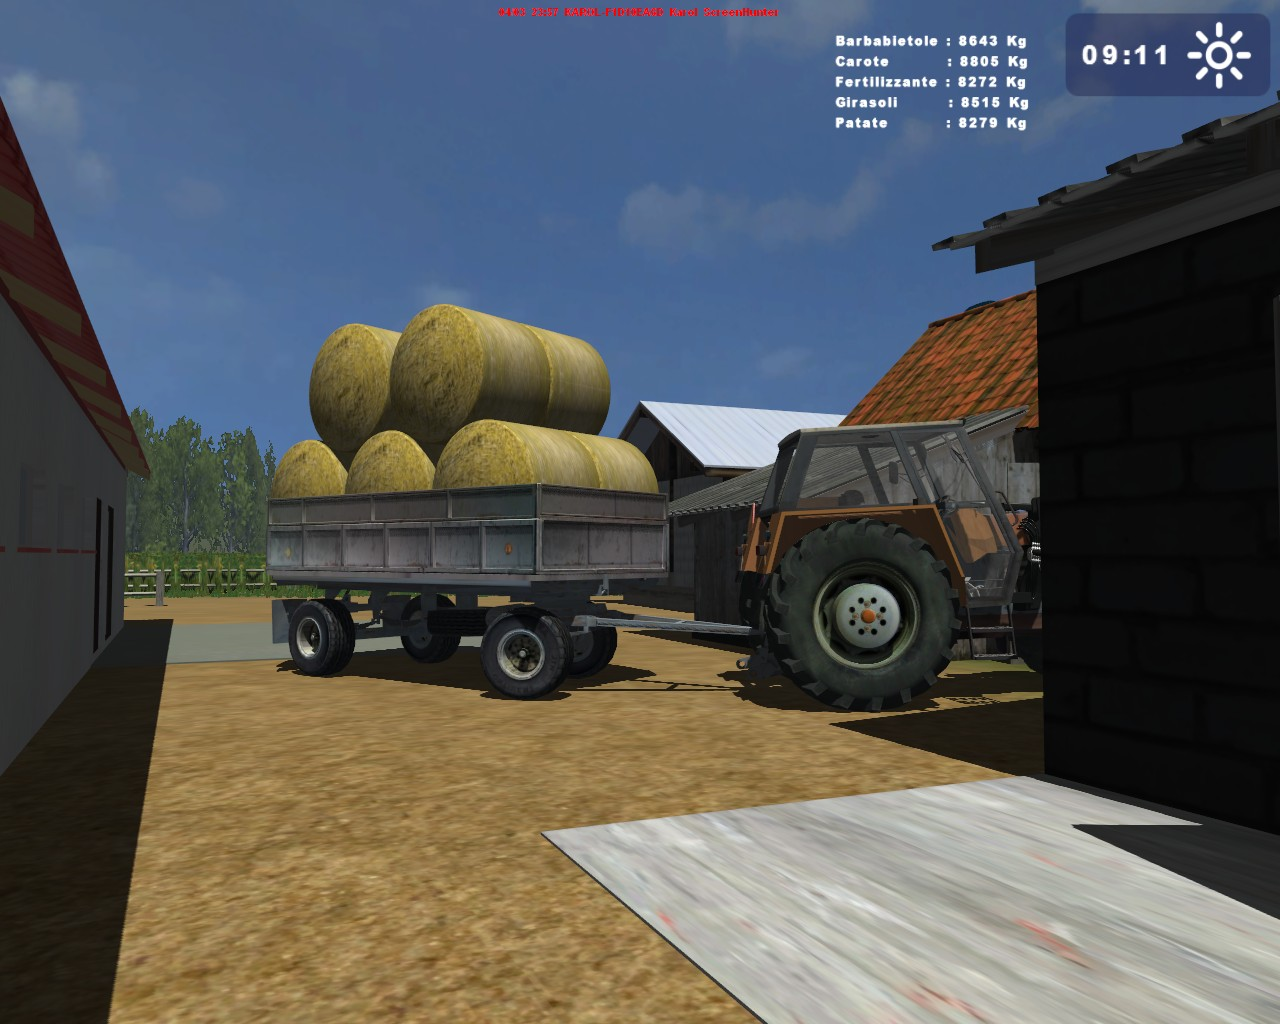 Landwirtschafts Simulator - Farming Simulator - Symulator Farmy ...